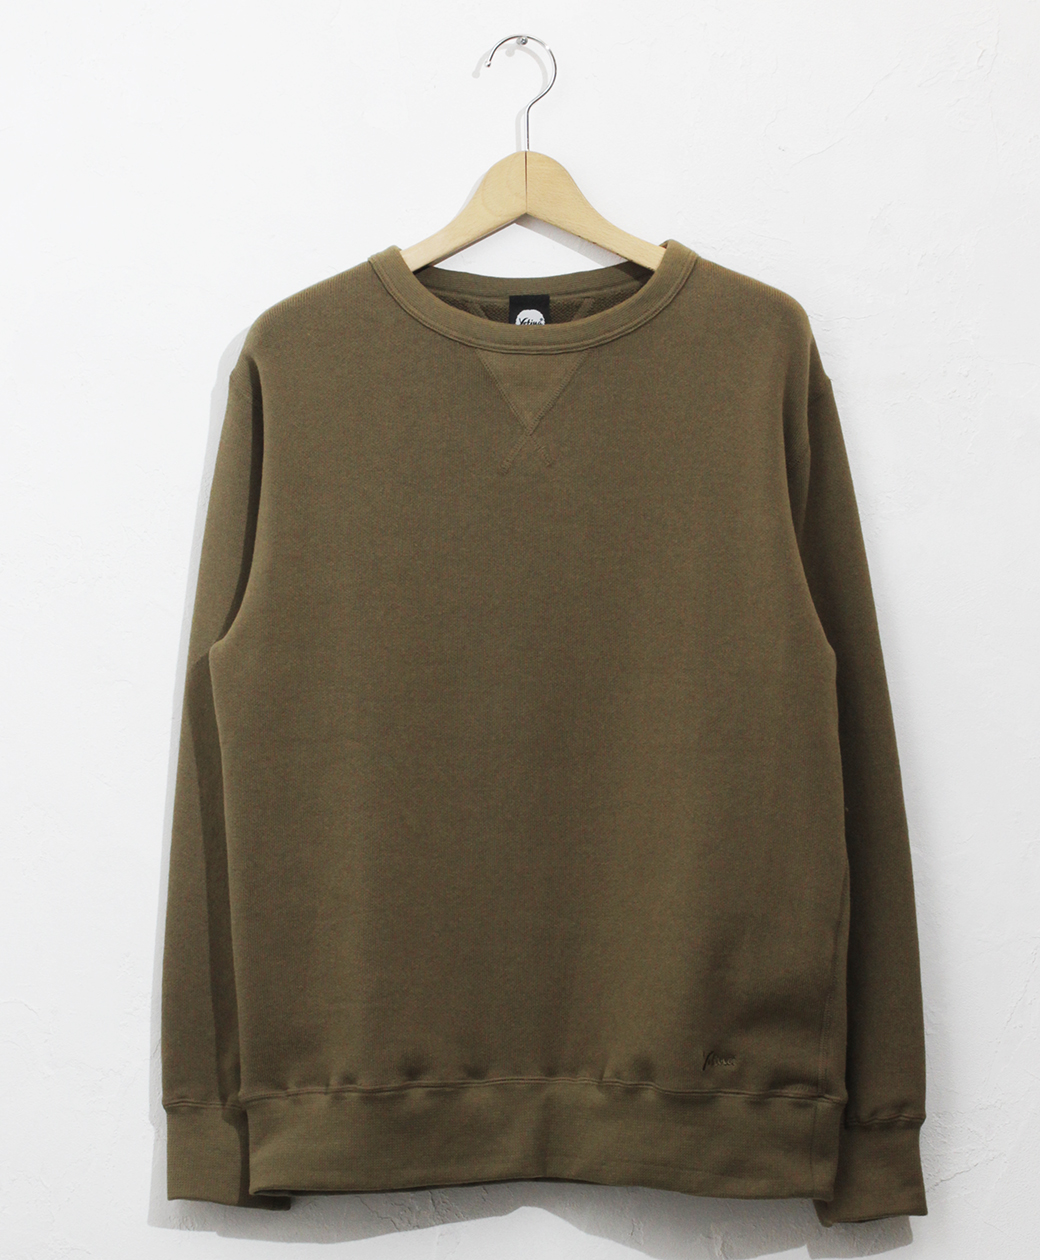 yetina Allseason cotton sweat shirt(dark olive)